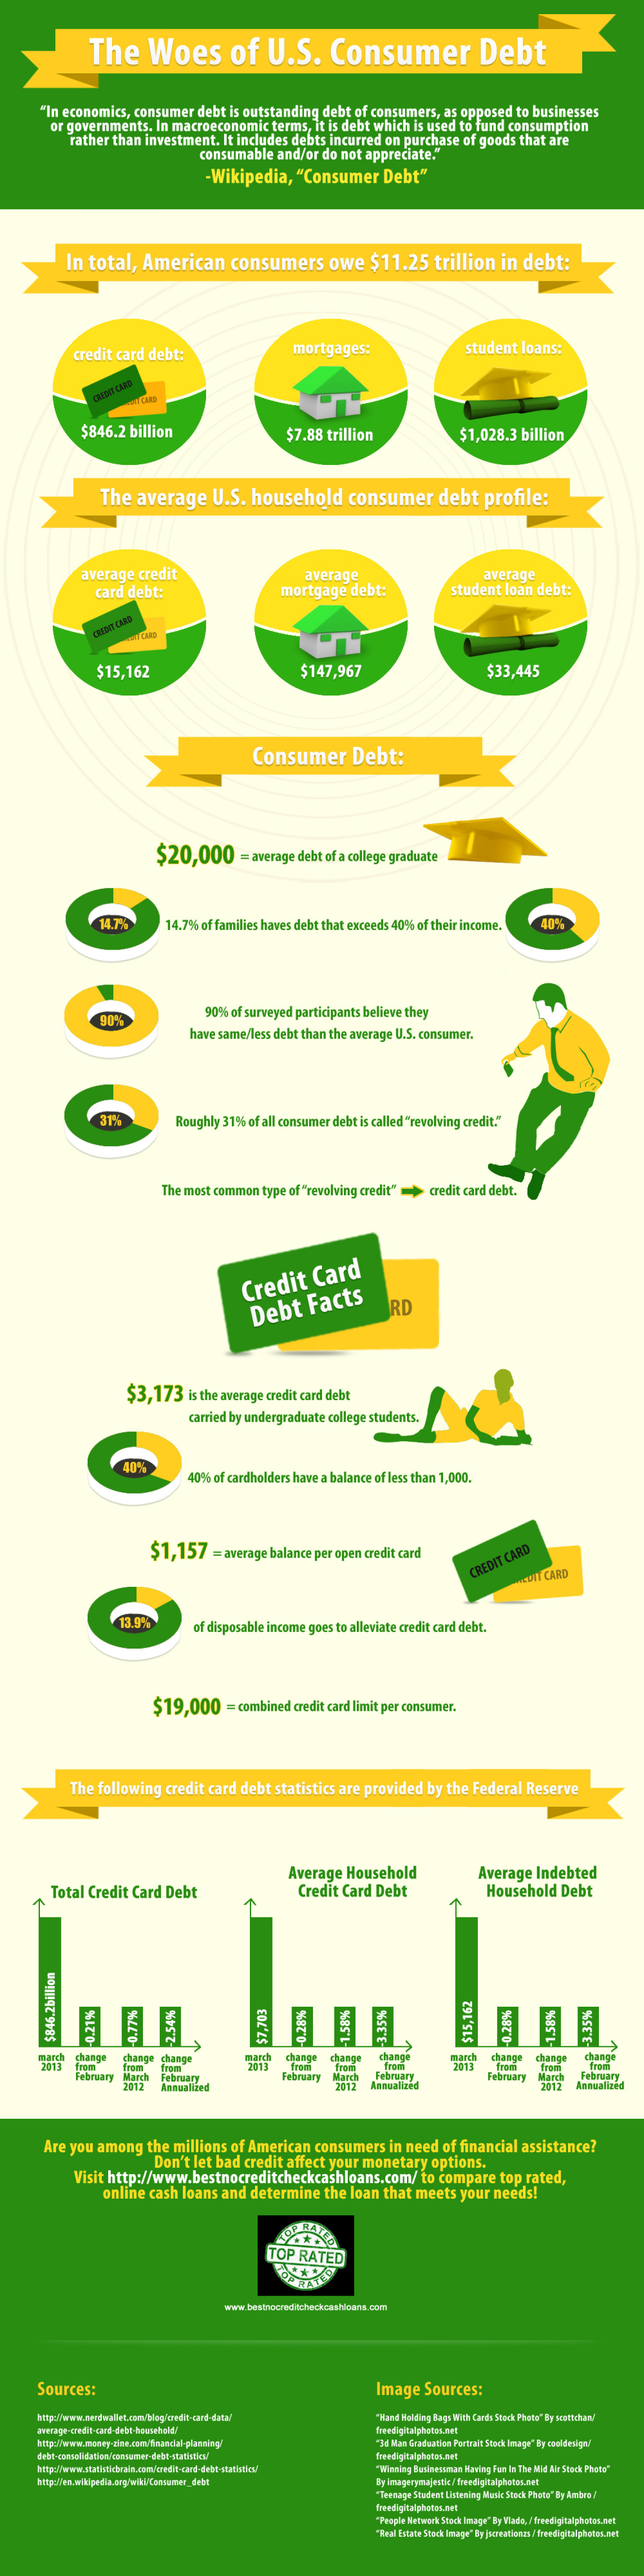 The Woes of U.S. Consumer Debt Infographic